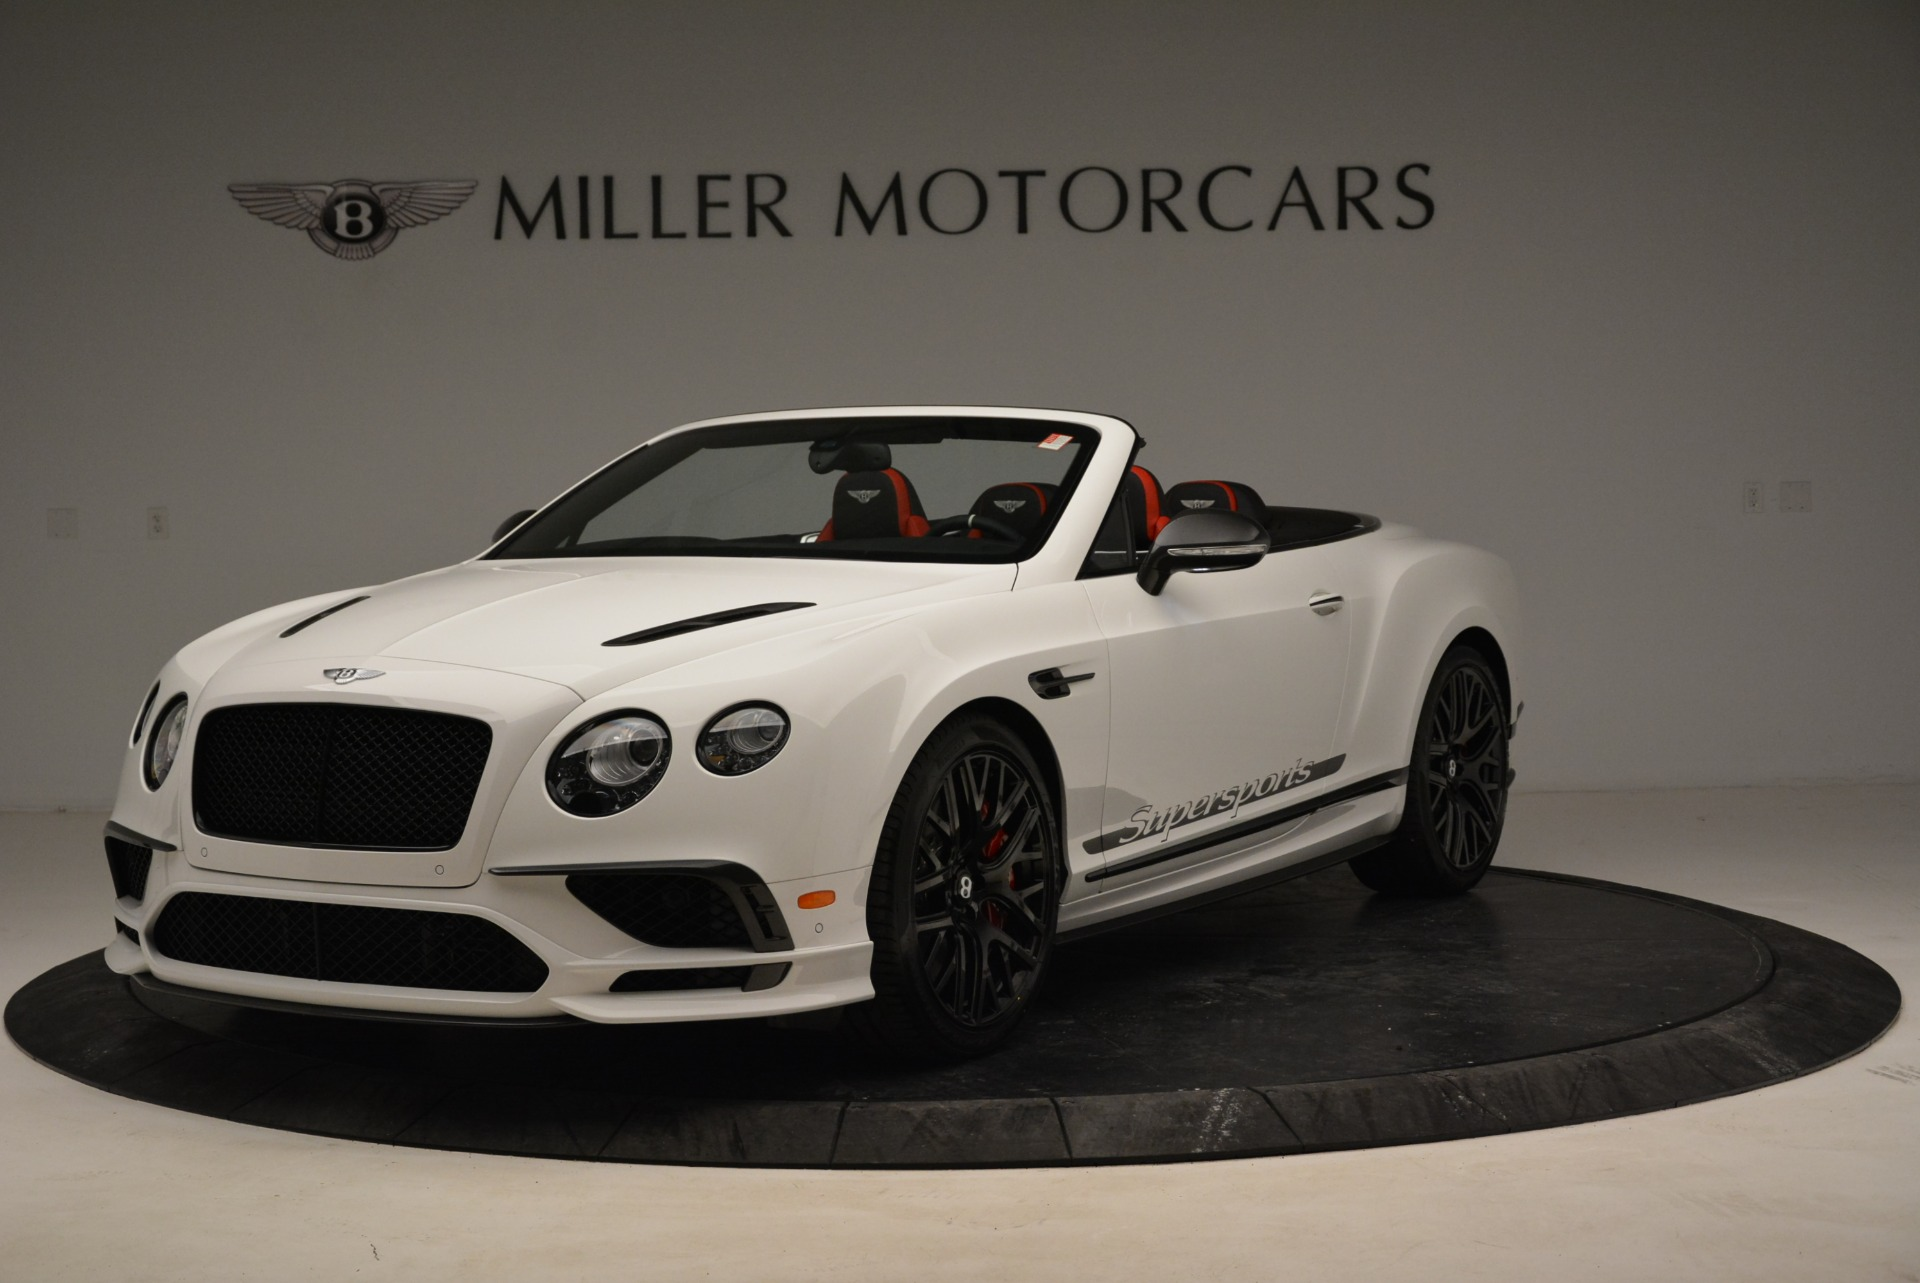 Used 2018 Bentley Continental GTC Supersports Convertible for sale Sold at Alfa Romeo of Greenwich in Greenwich CT 06830 1